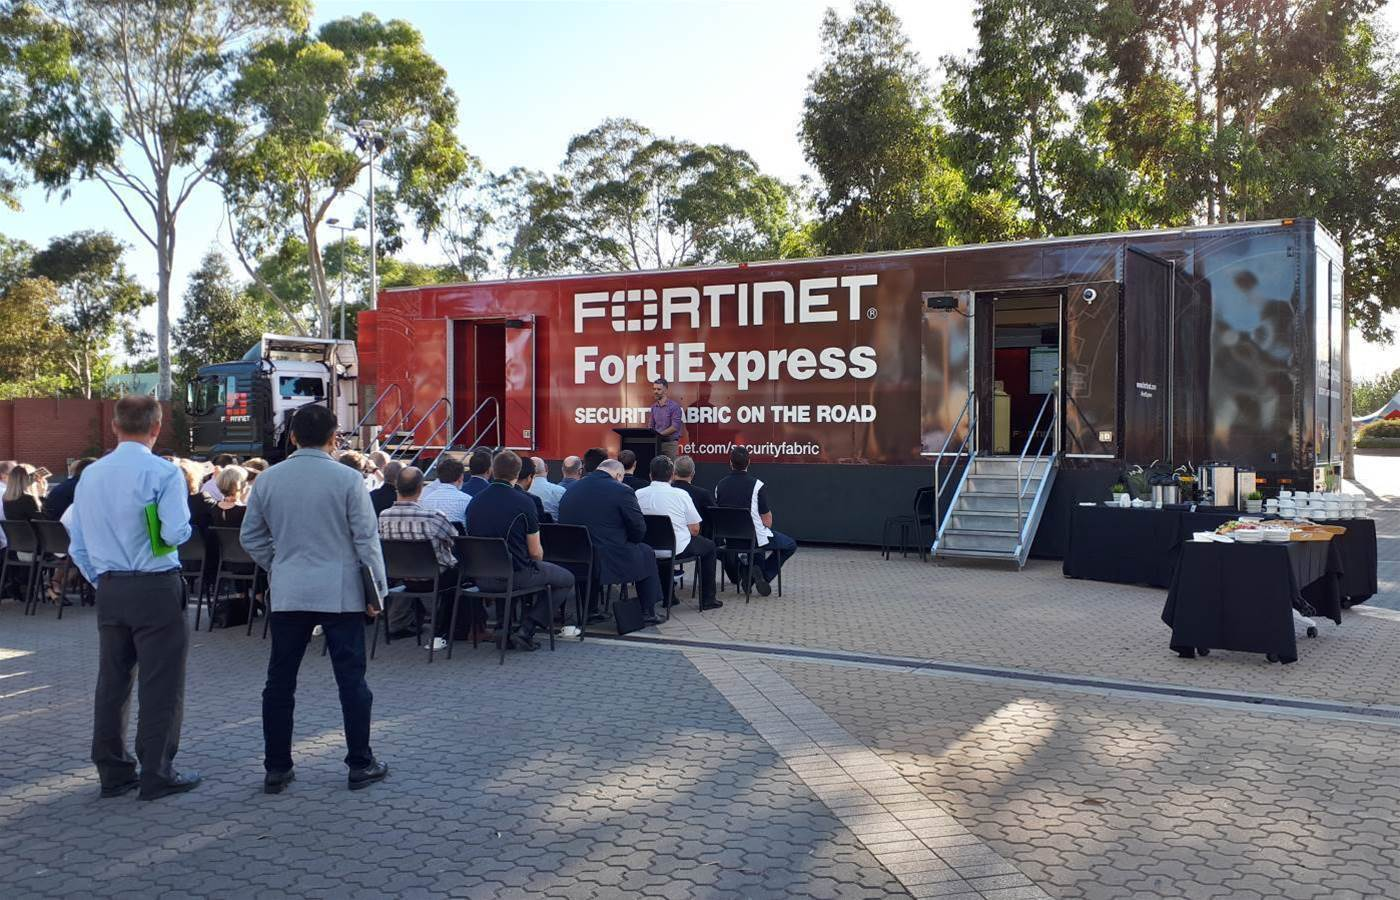 Fortinet takes FortiExpress truck on nationwide tour